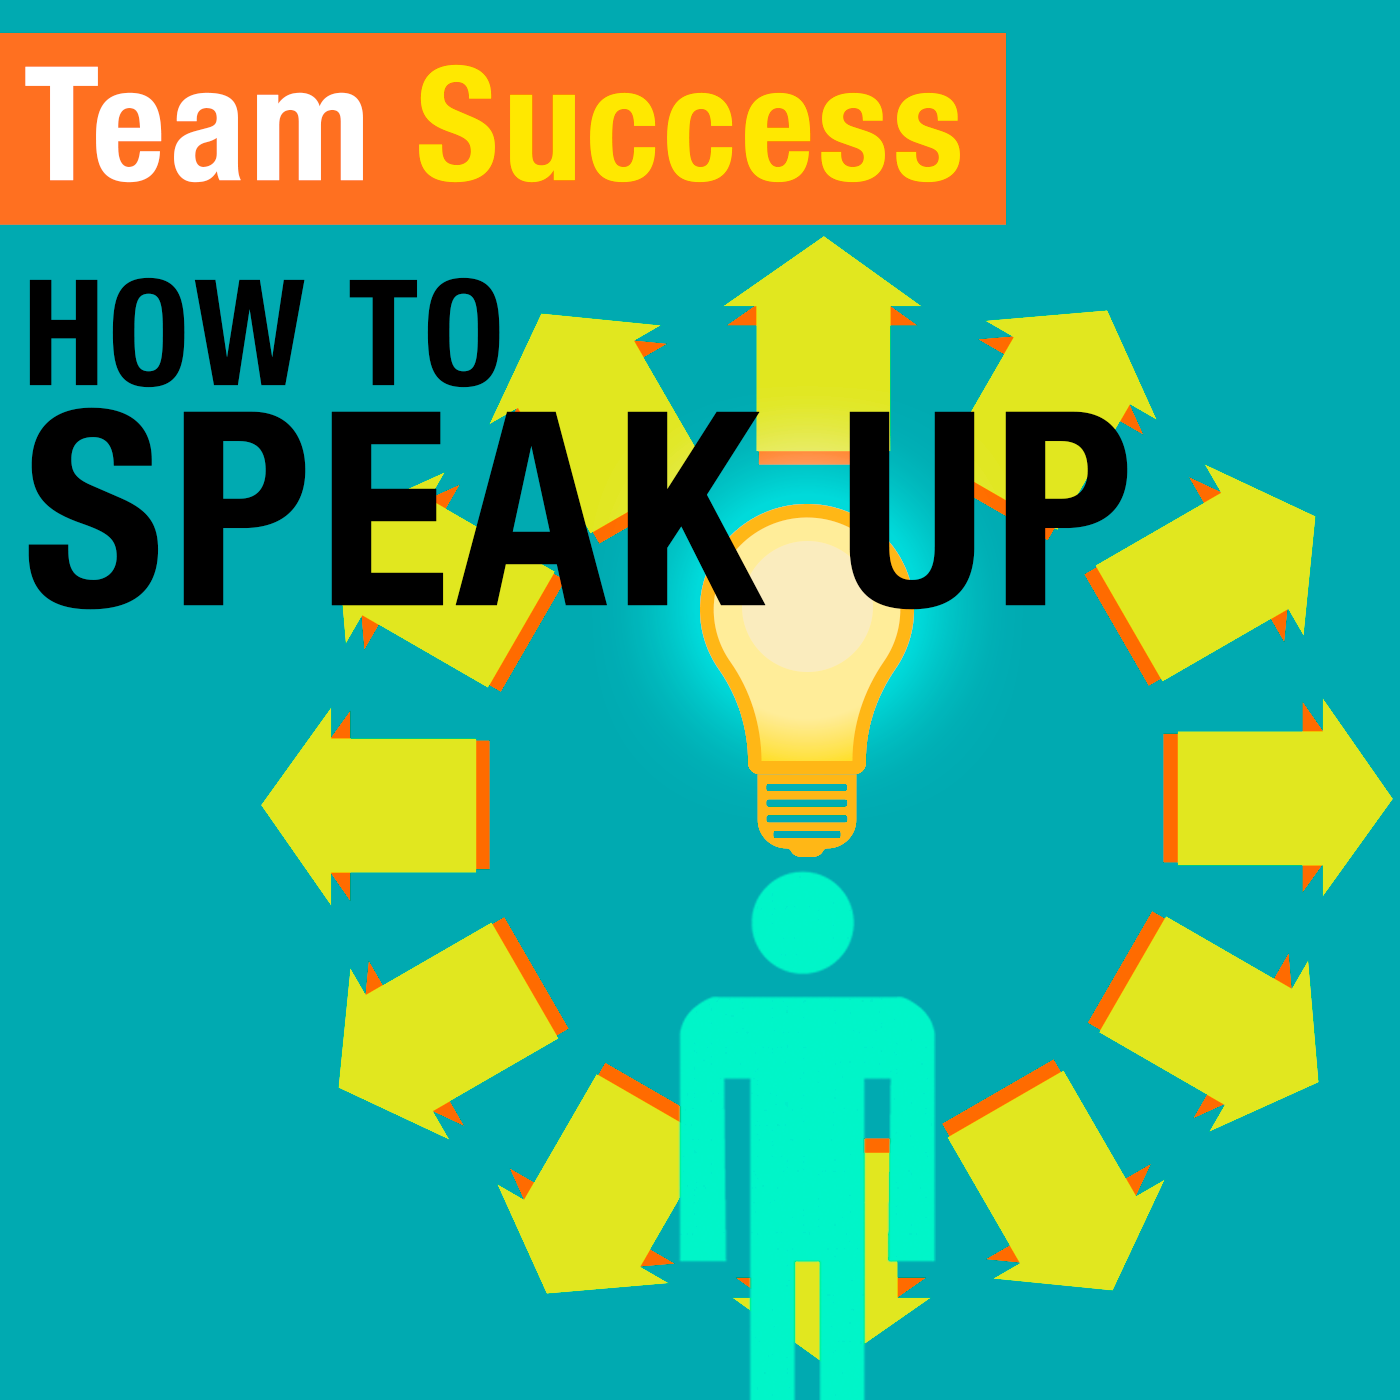 How To Speak Up